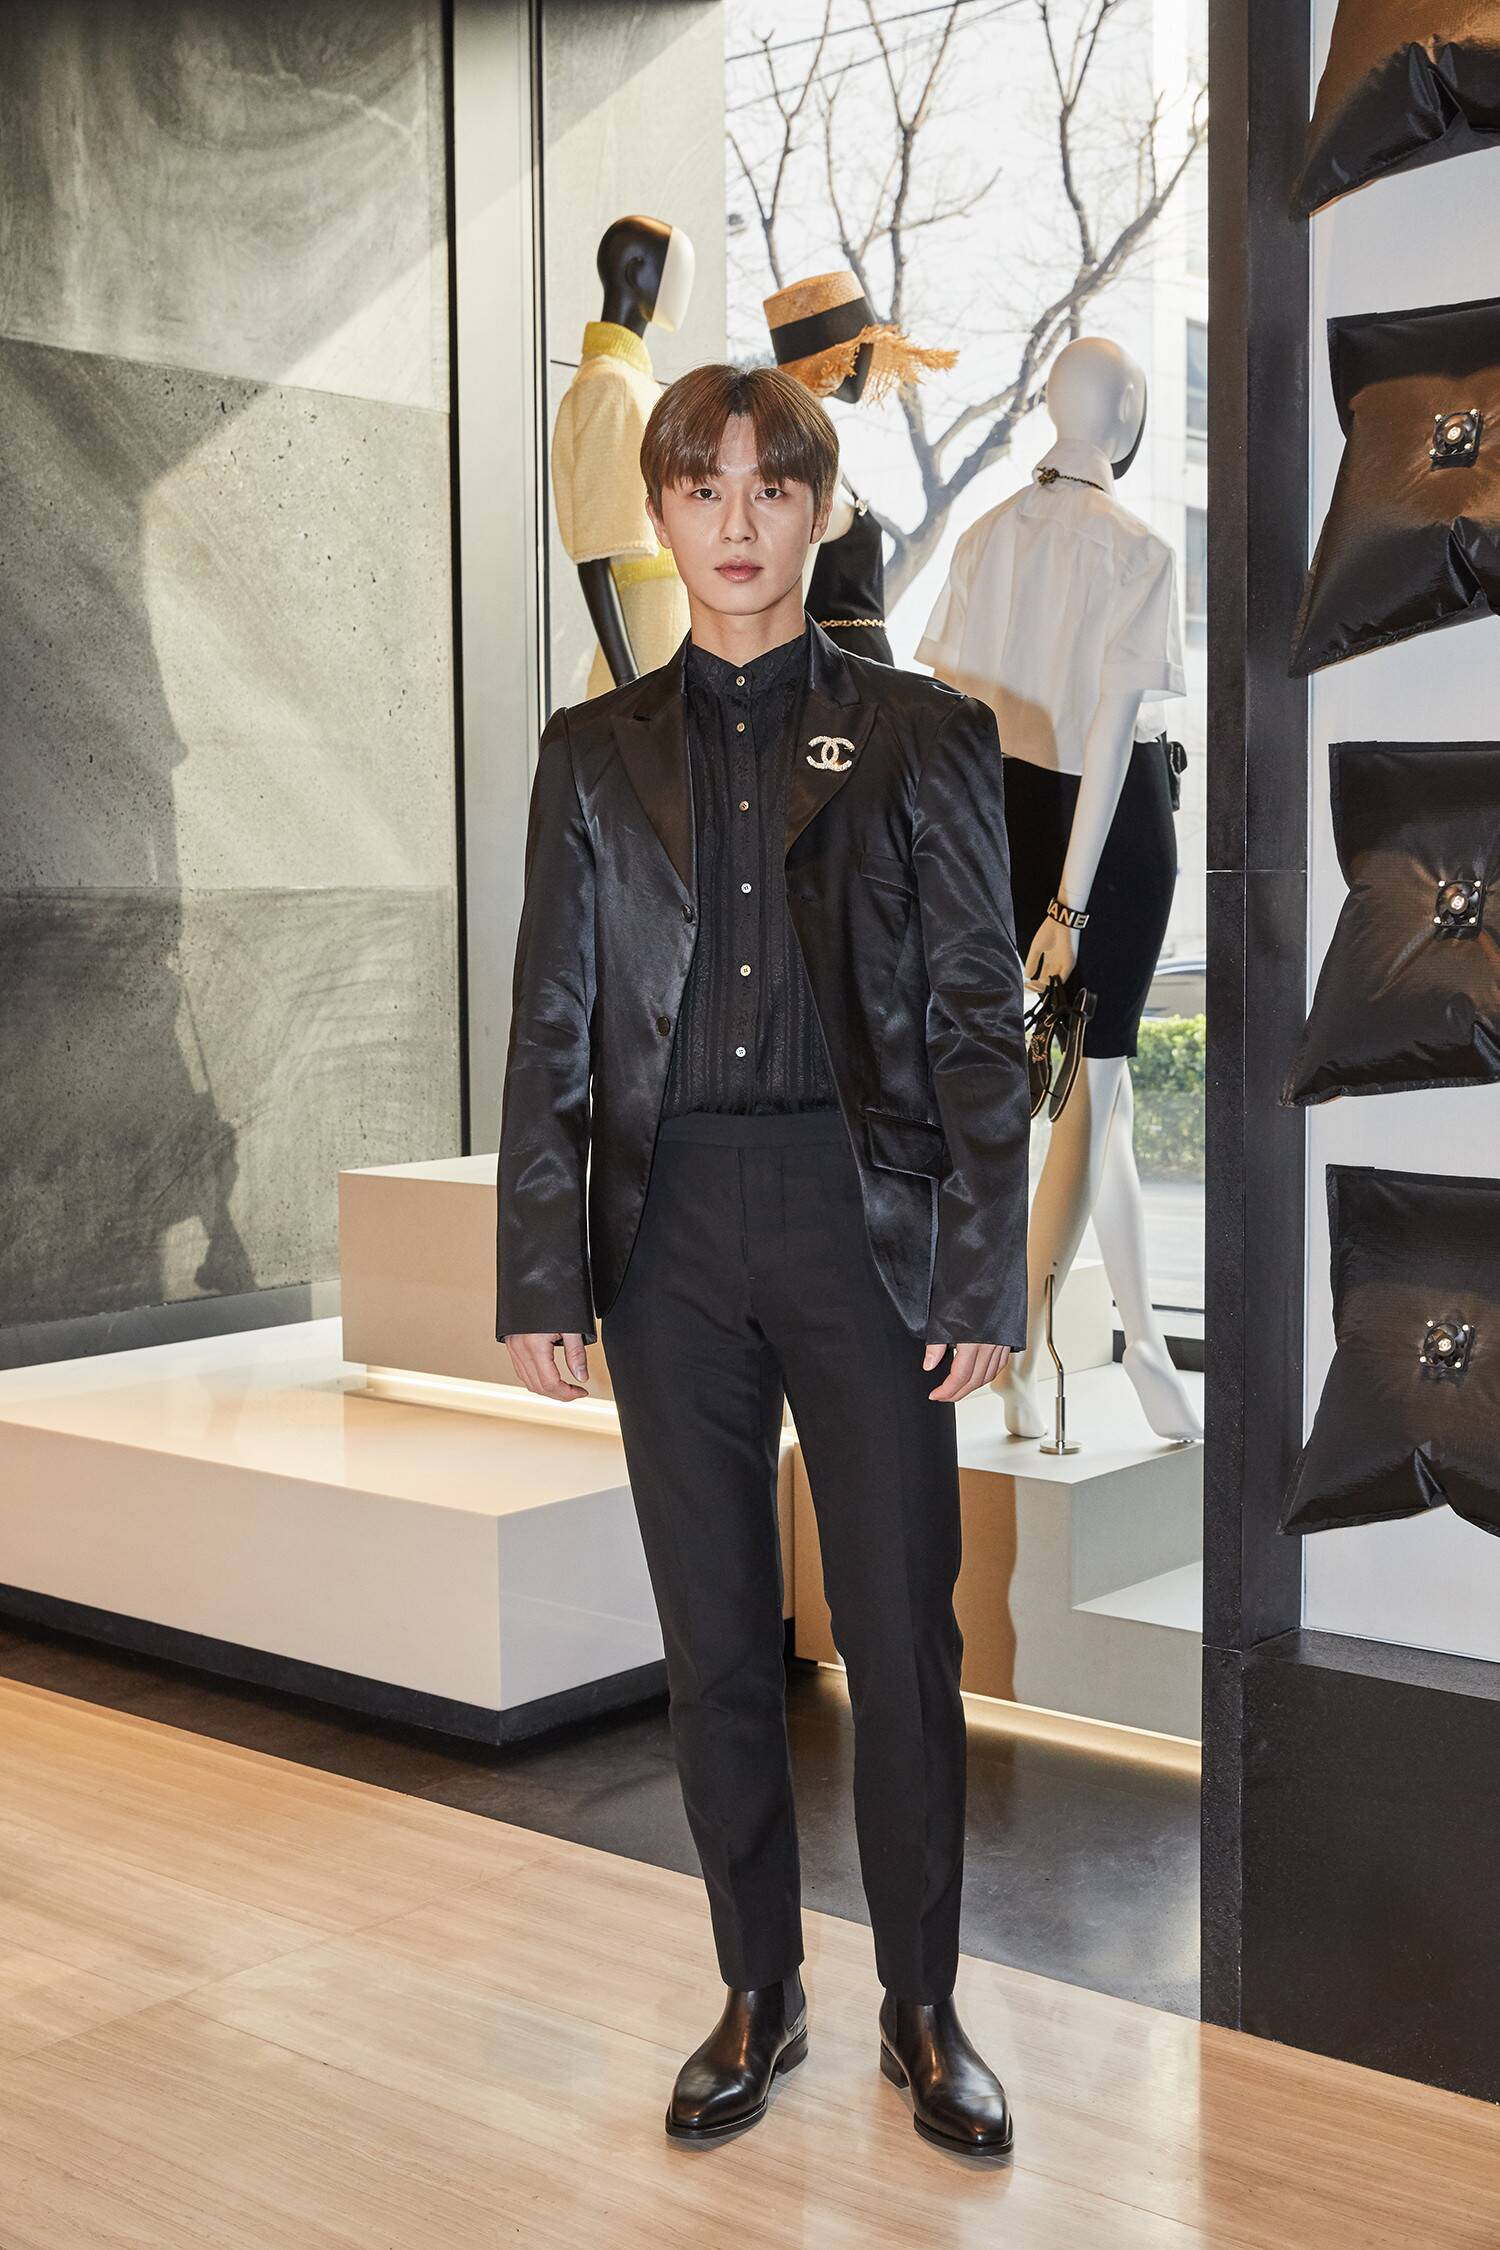 rs_1500x2250-190401000520-41_Seo_Joon_PARK_2__CHANEL-Pharrell_Capsule_collection_launch_in_Seoul_LD